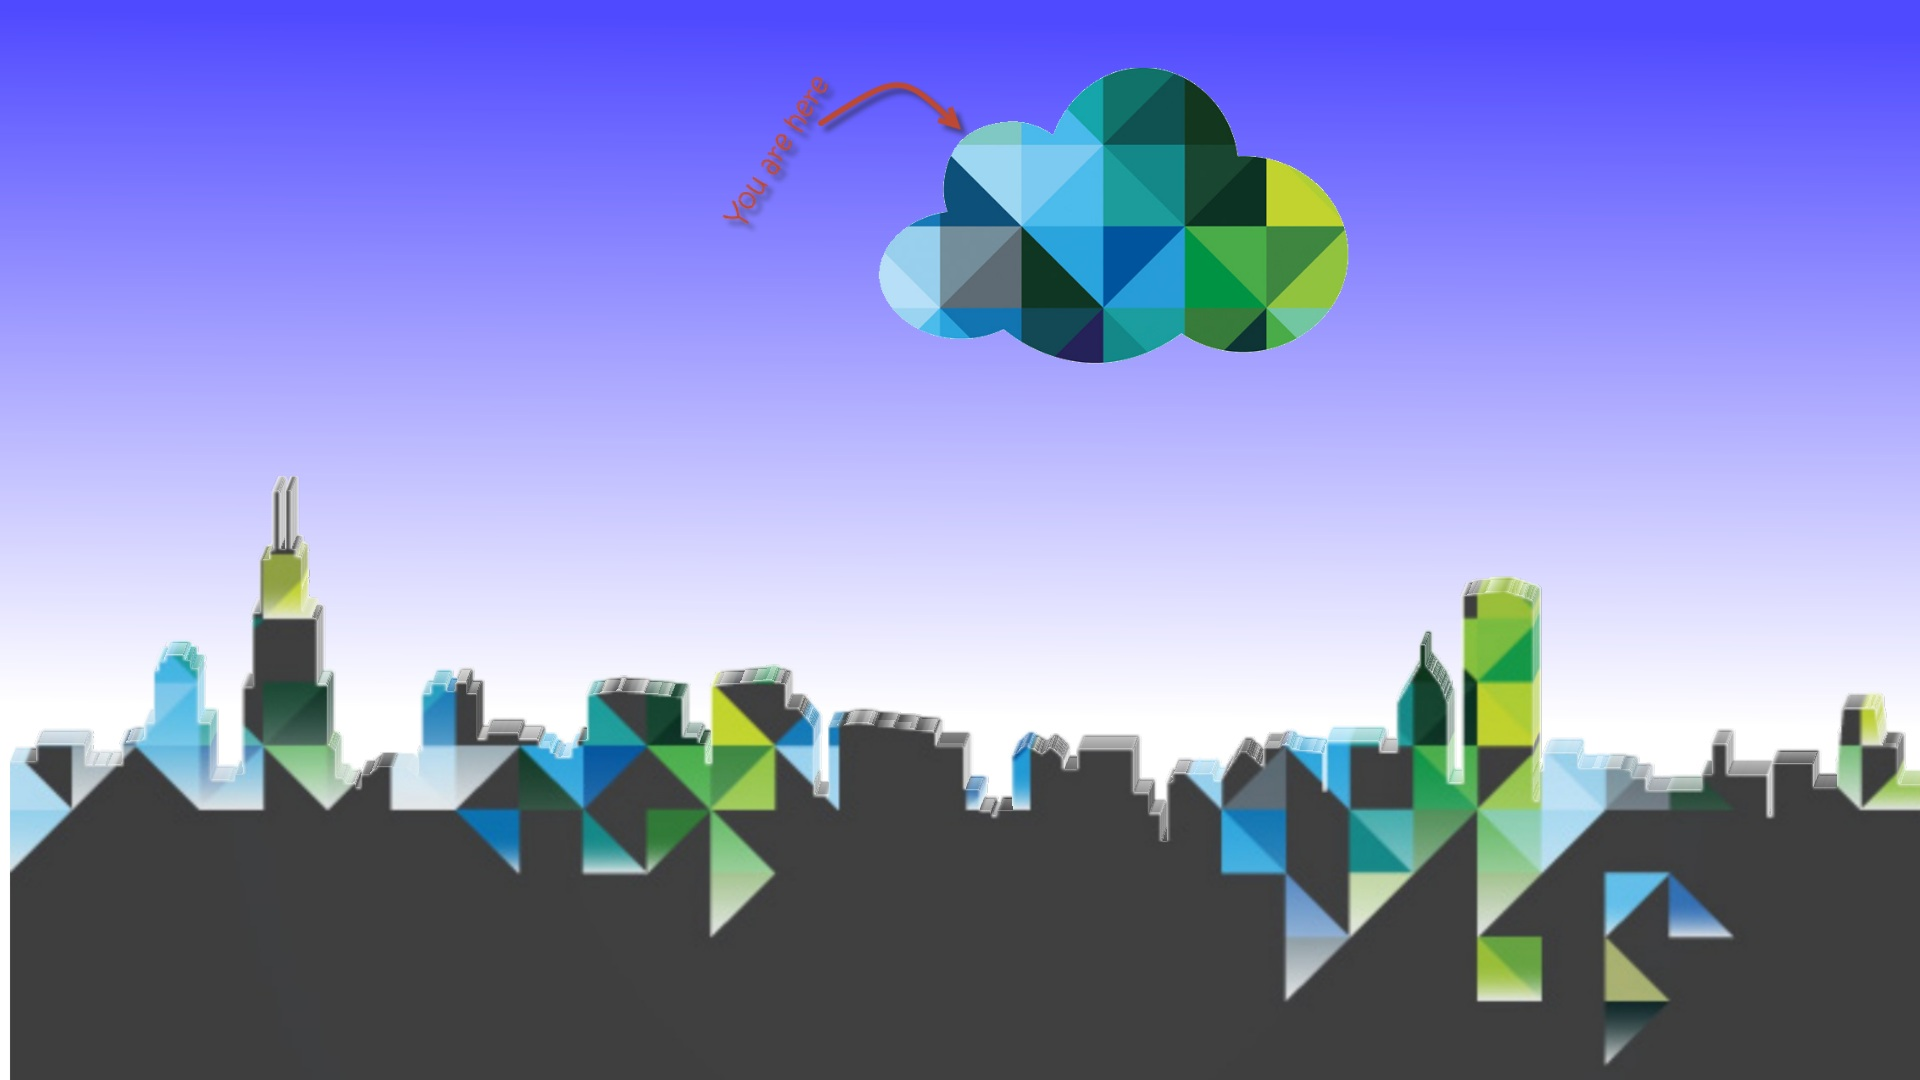 vmware_city_3d_cloud_desktop_background_you_are_here